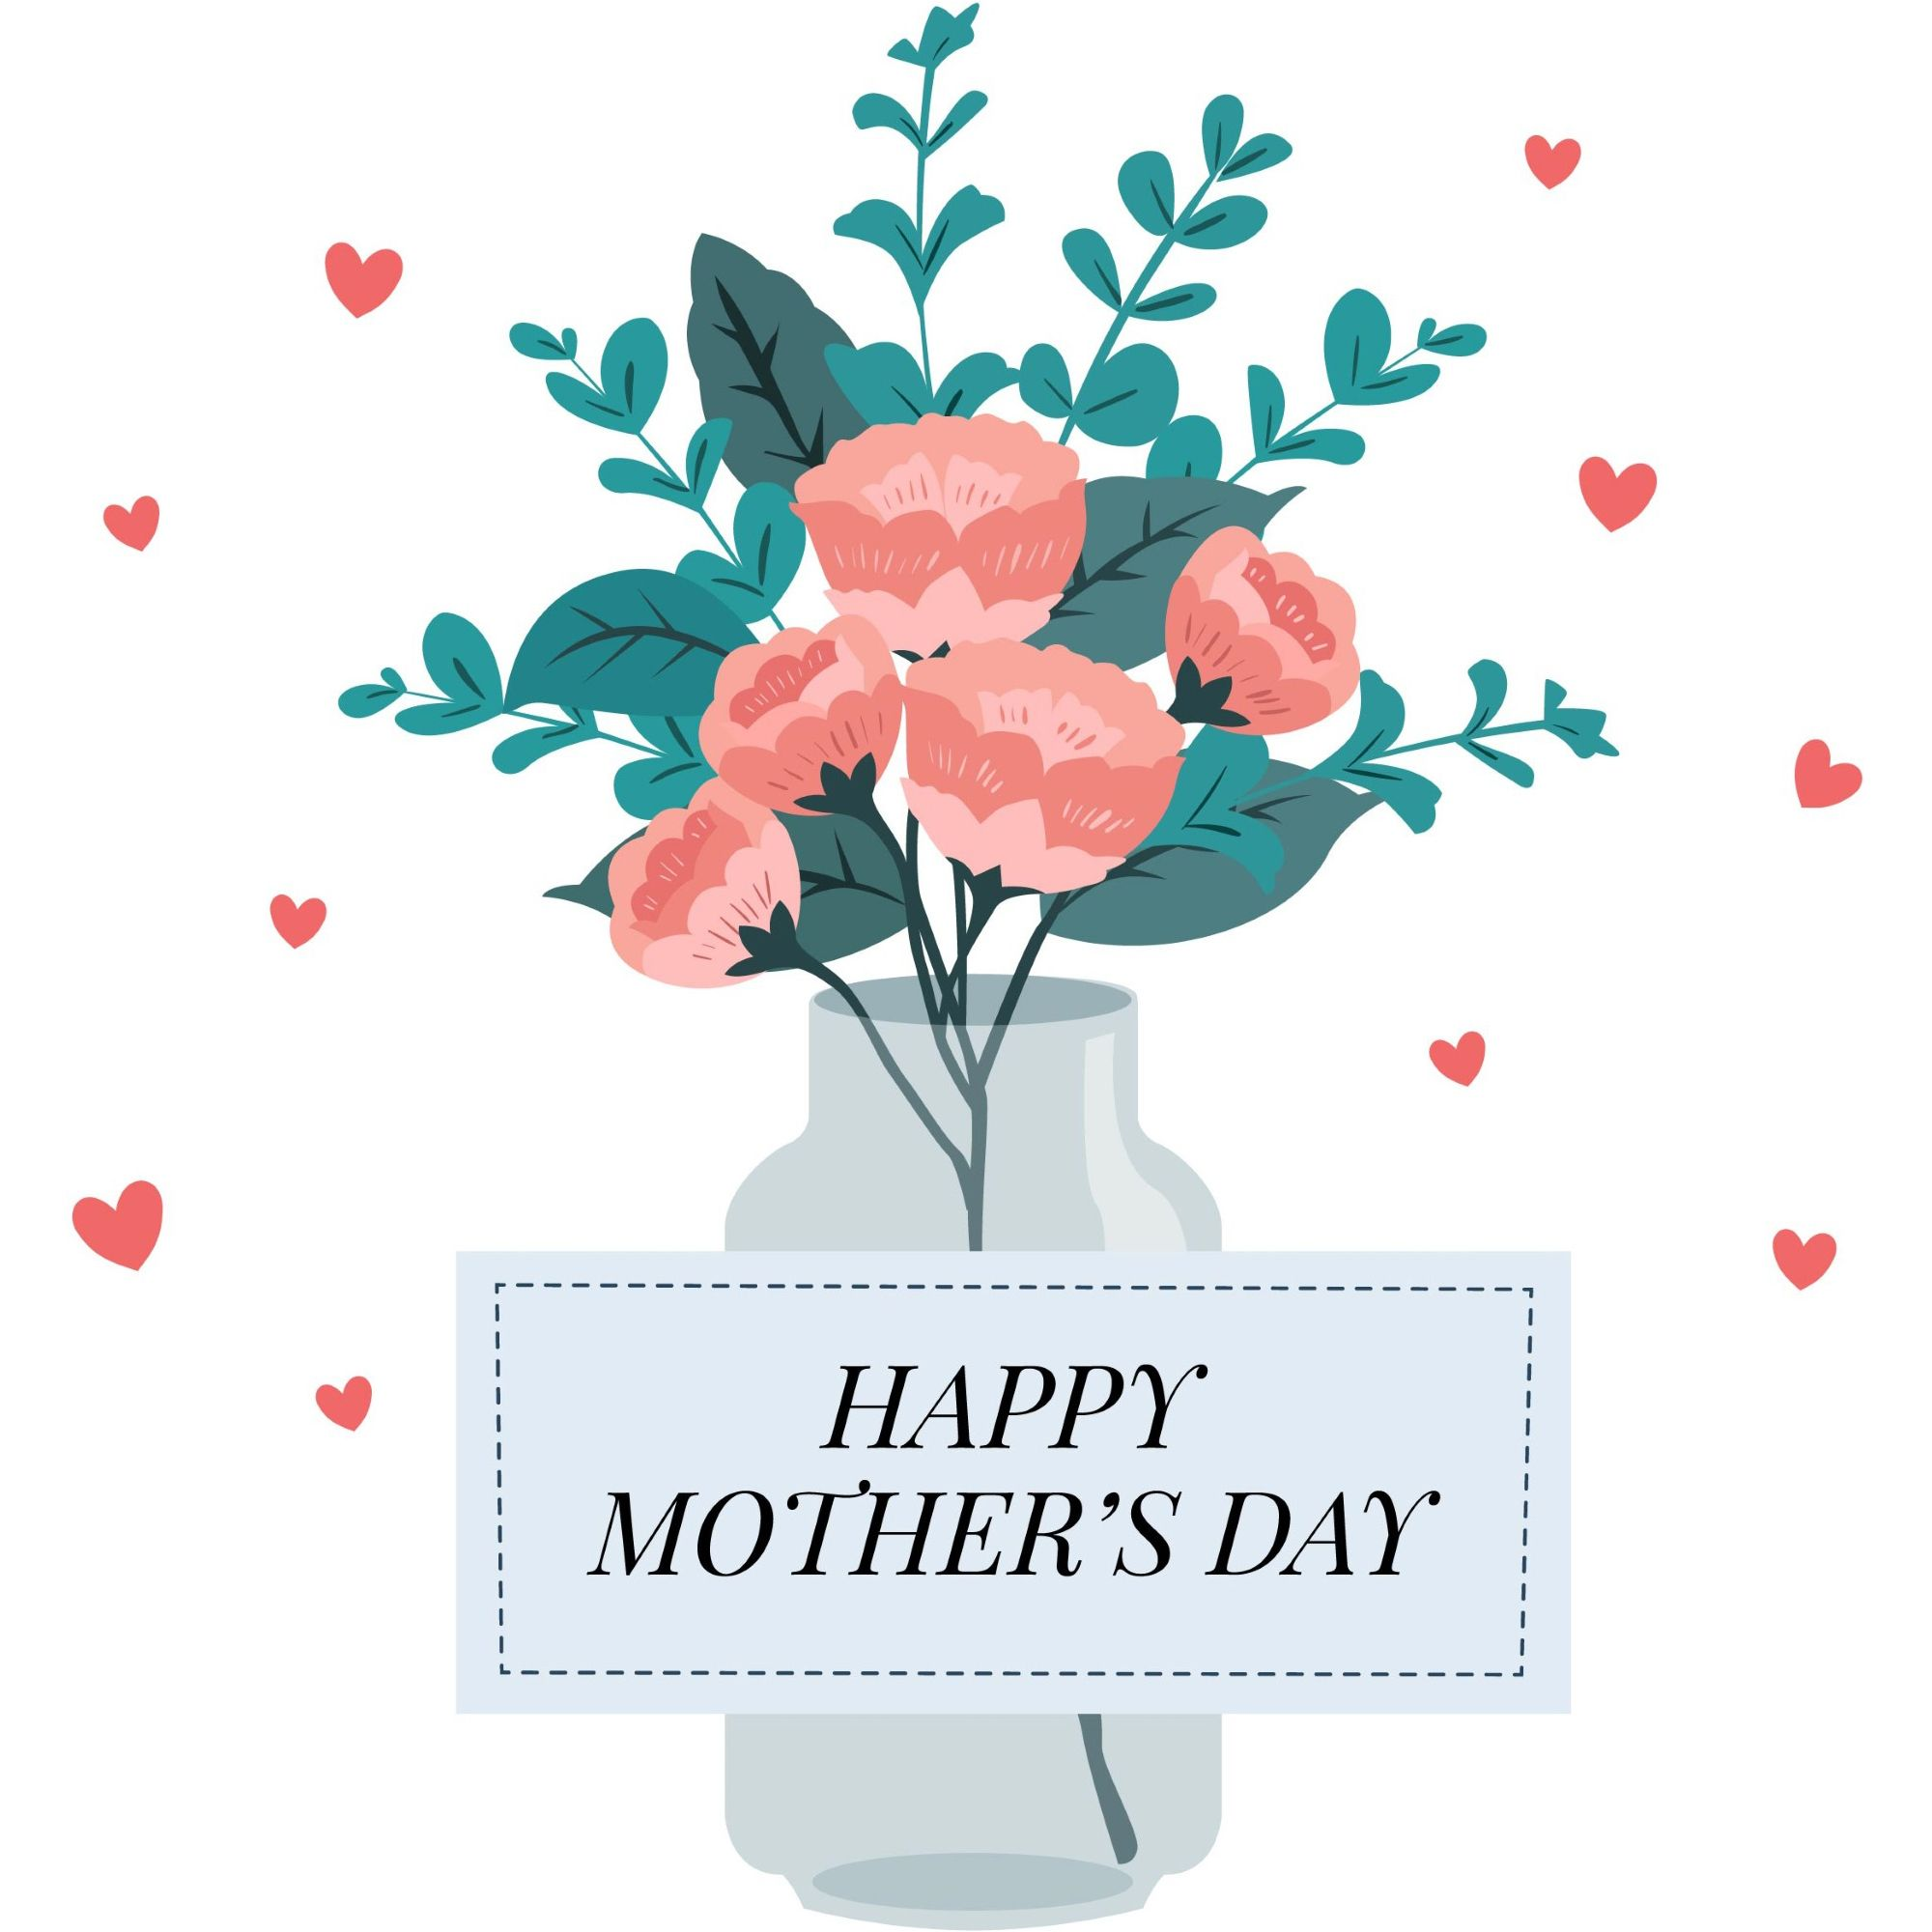 Happy mother\'s day layout design with roses, lettering, ribbon ...